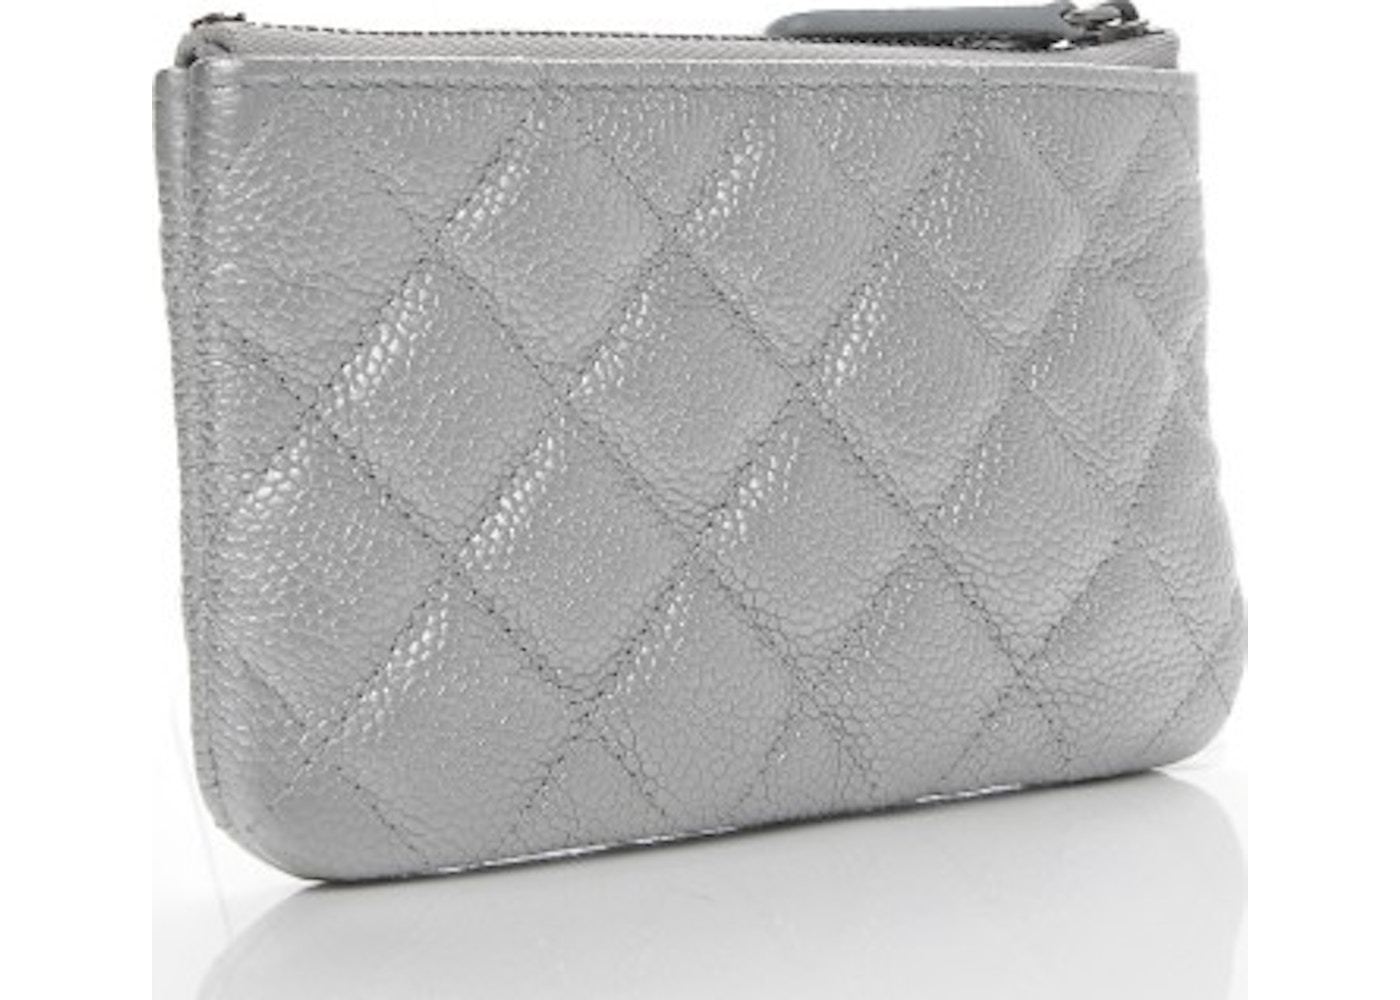 4ca1e5487a3427 Chanel Cosmetic Case Quilted Diamond Metallic Small Silver